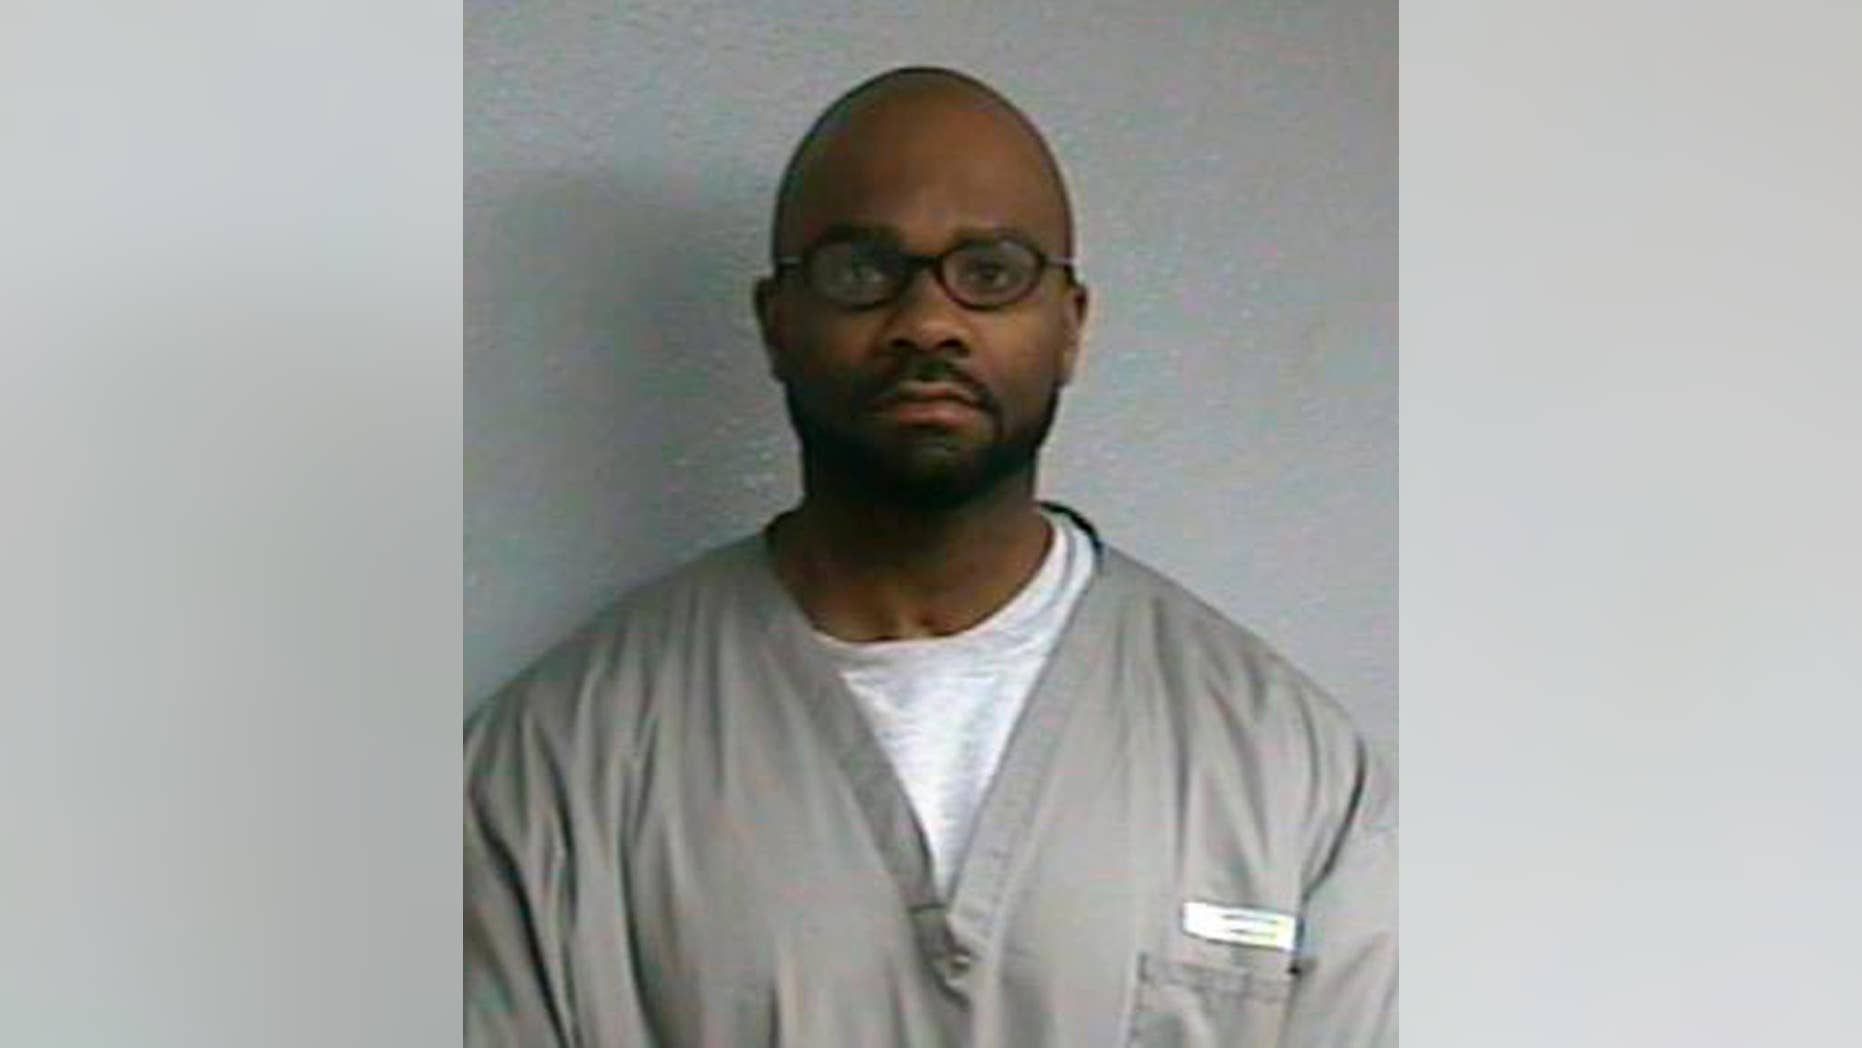 FILE- This March 6, 2015, file photo provided by the Oklahoma Department of Corrections shows Demarco Carpenter, also known as Demarchoe Carpenter. An Oklahoma judge on Monday, May 9, 2016, has declared that Carpenter and another men who were convicted in the drive-by shooting death of a woman 22 years ago are innocent and vacated their convictions. (Oklahoma Department of Corrections via AP, File)